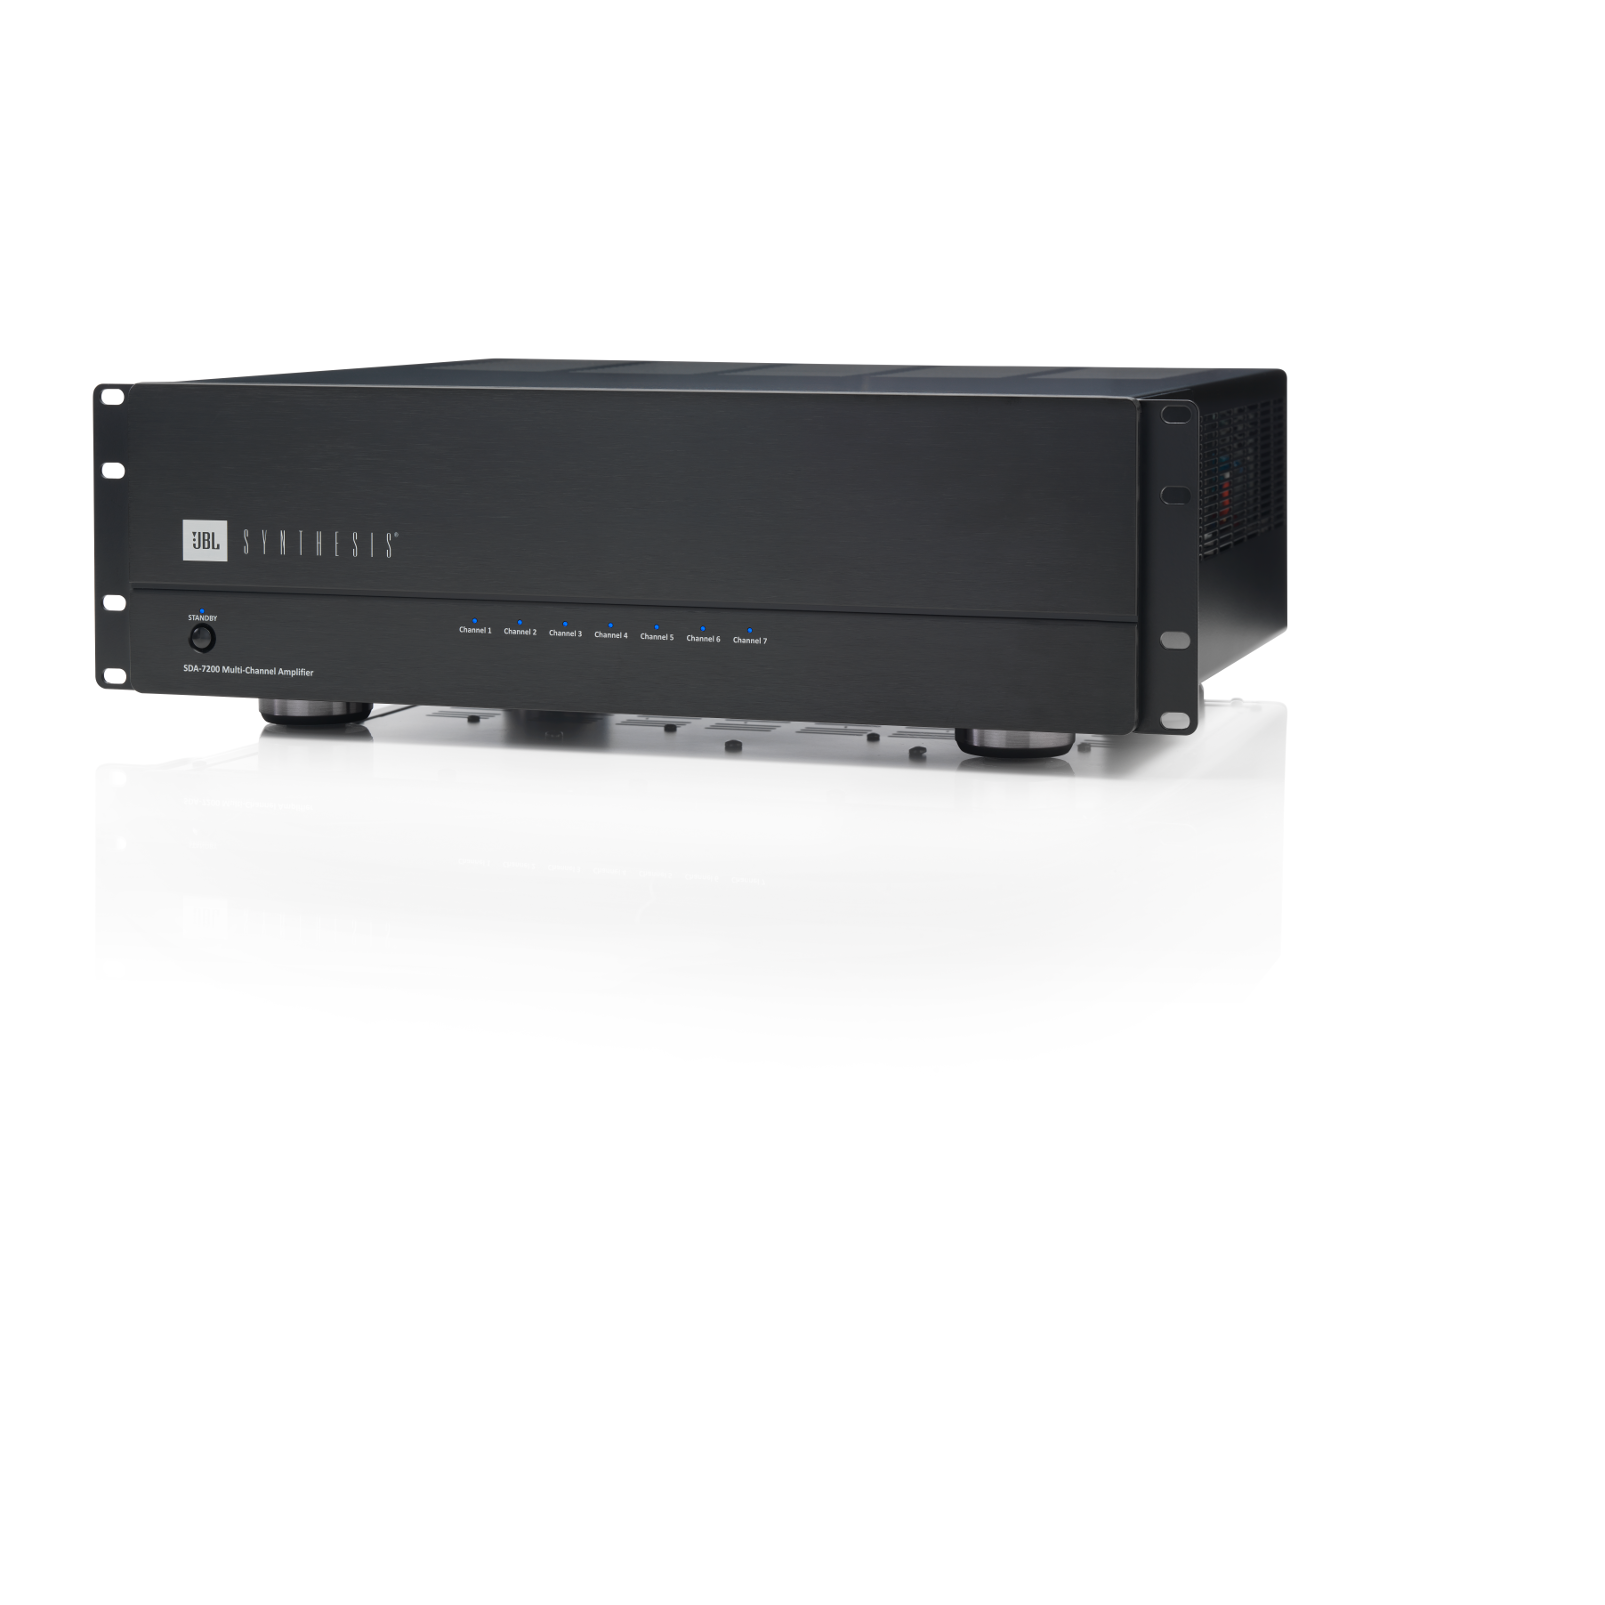 SDA 7200 - Black Lacquer - Multichannel Power Amplifier - Hero